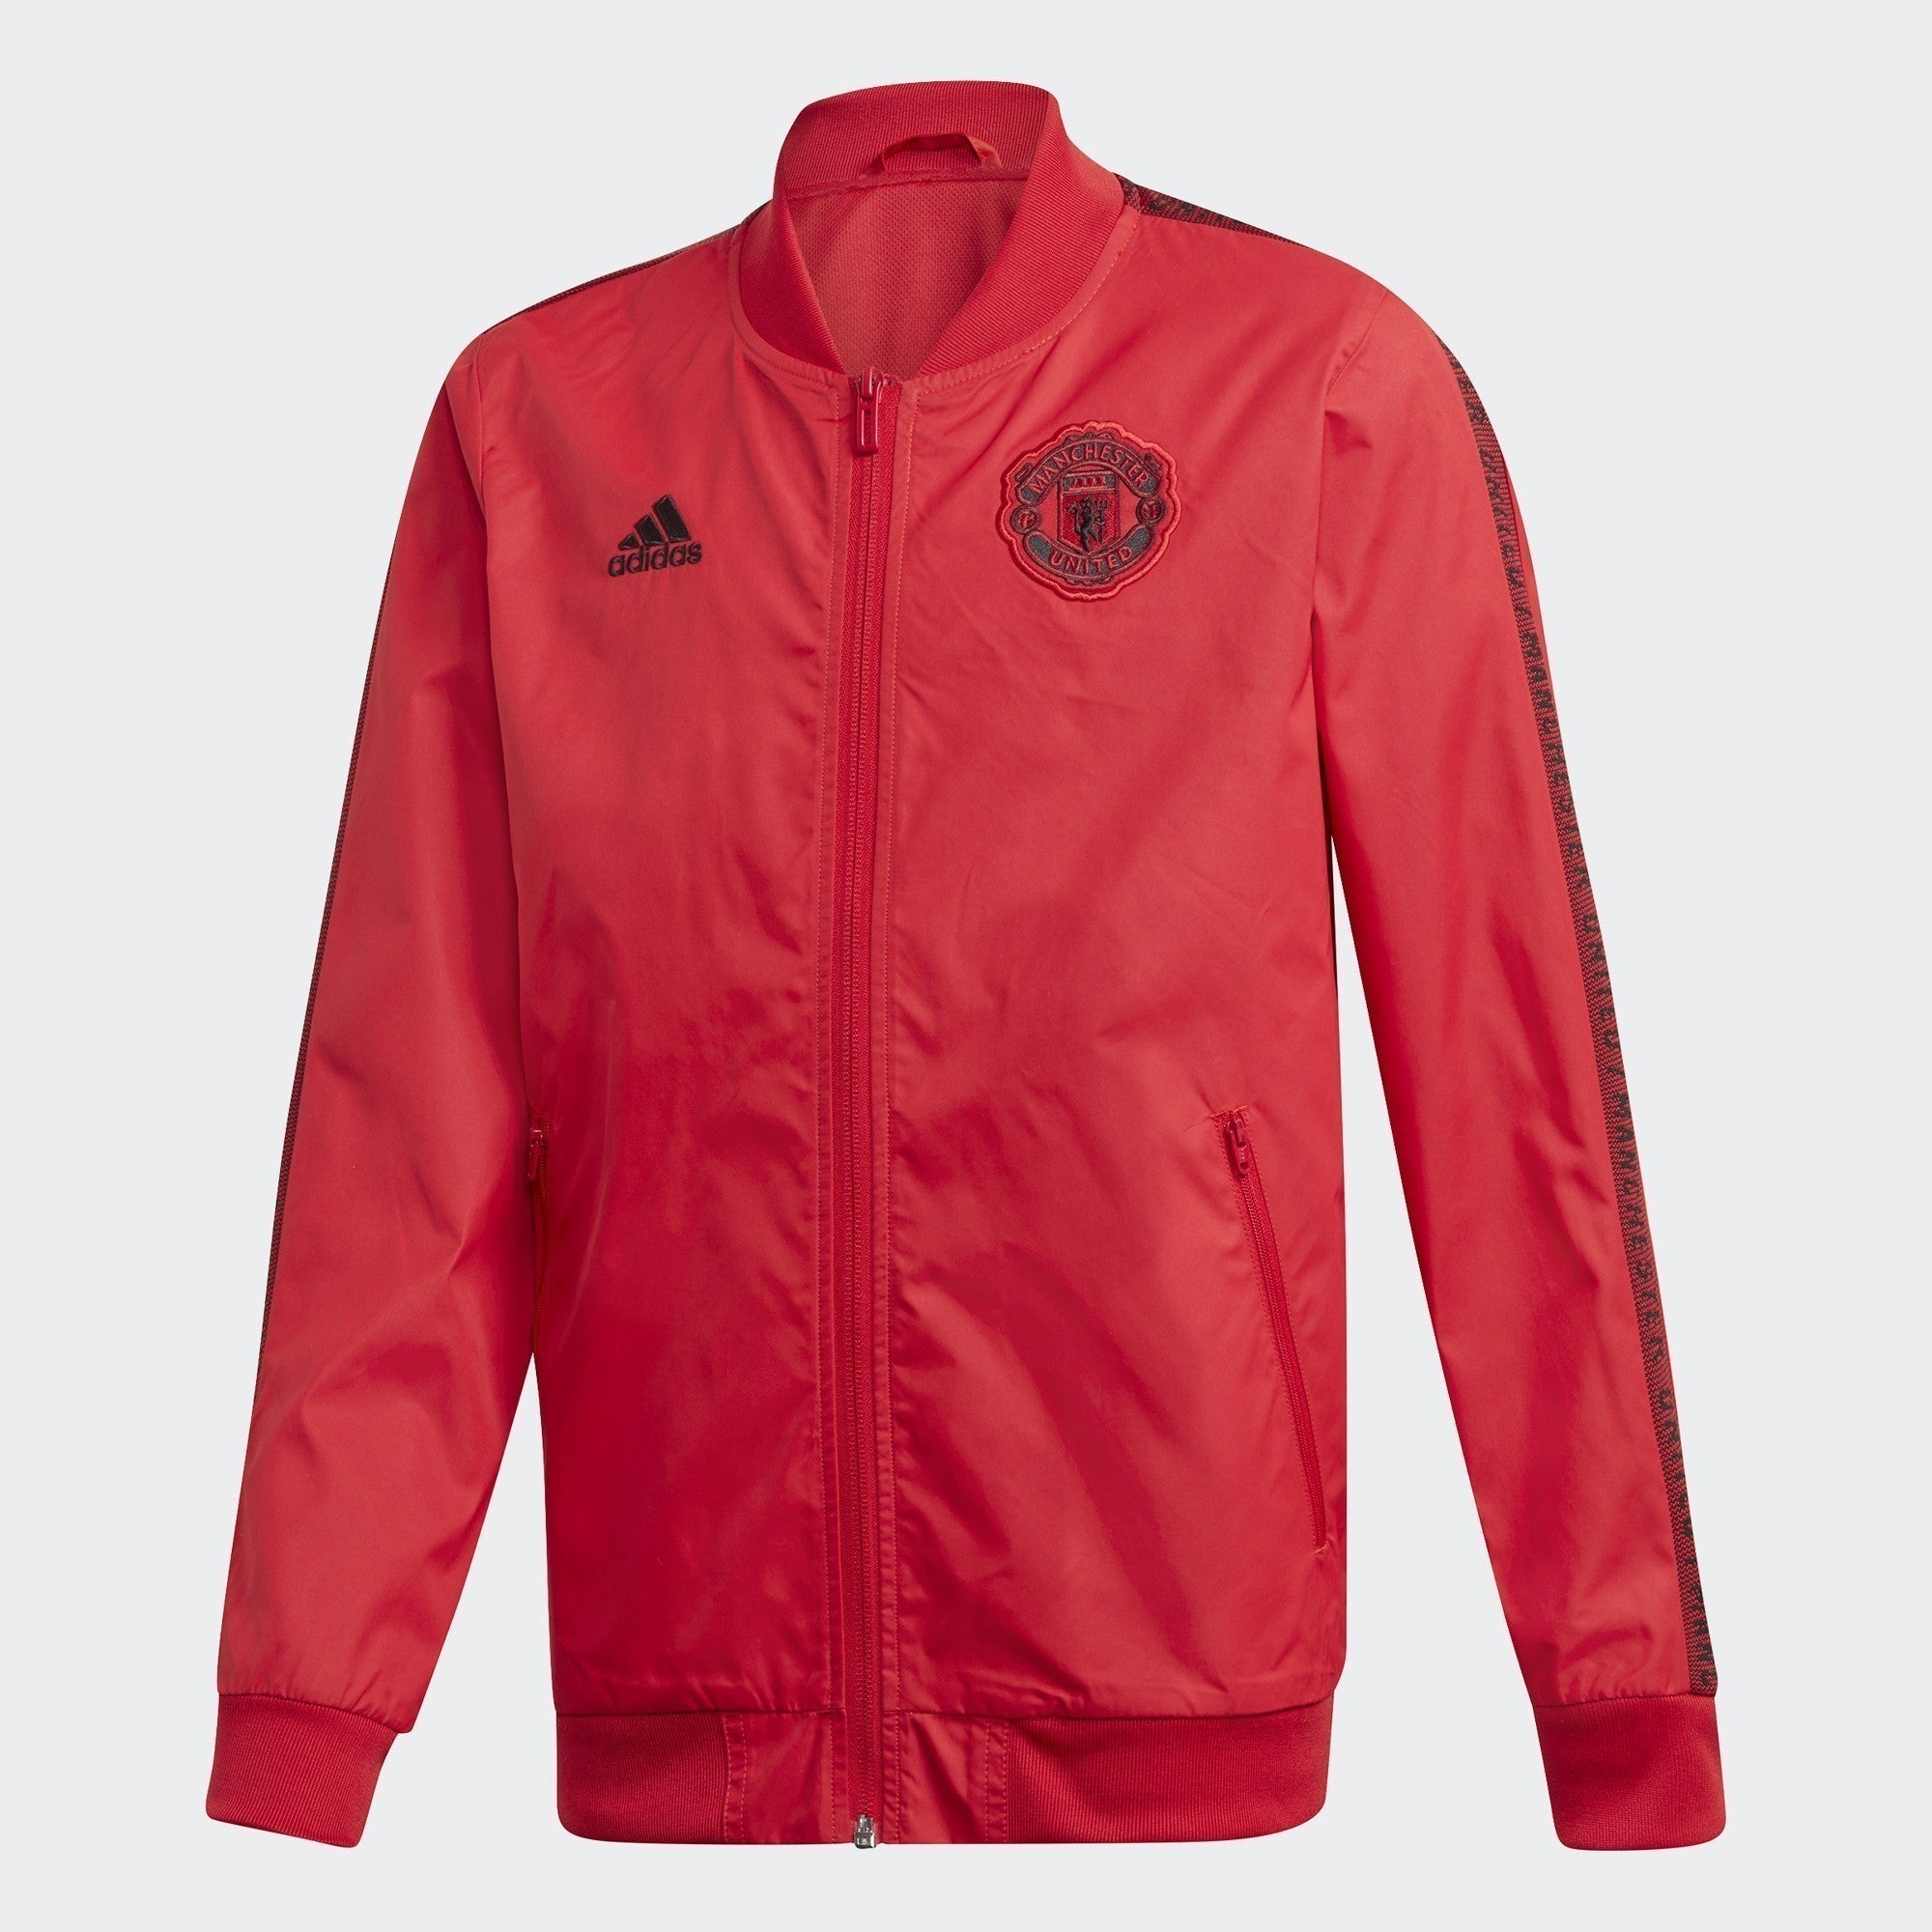 Kid's Manchester United Anthem Jacket - Real Red/Black